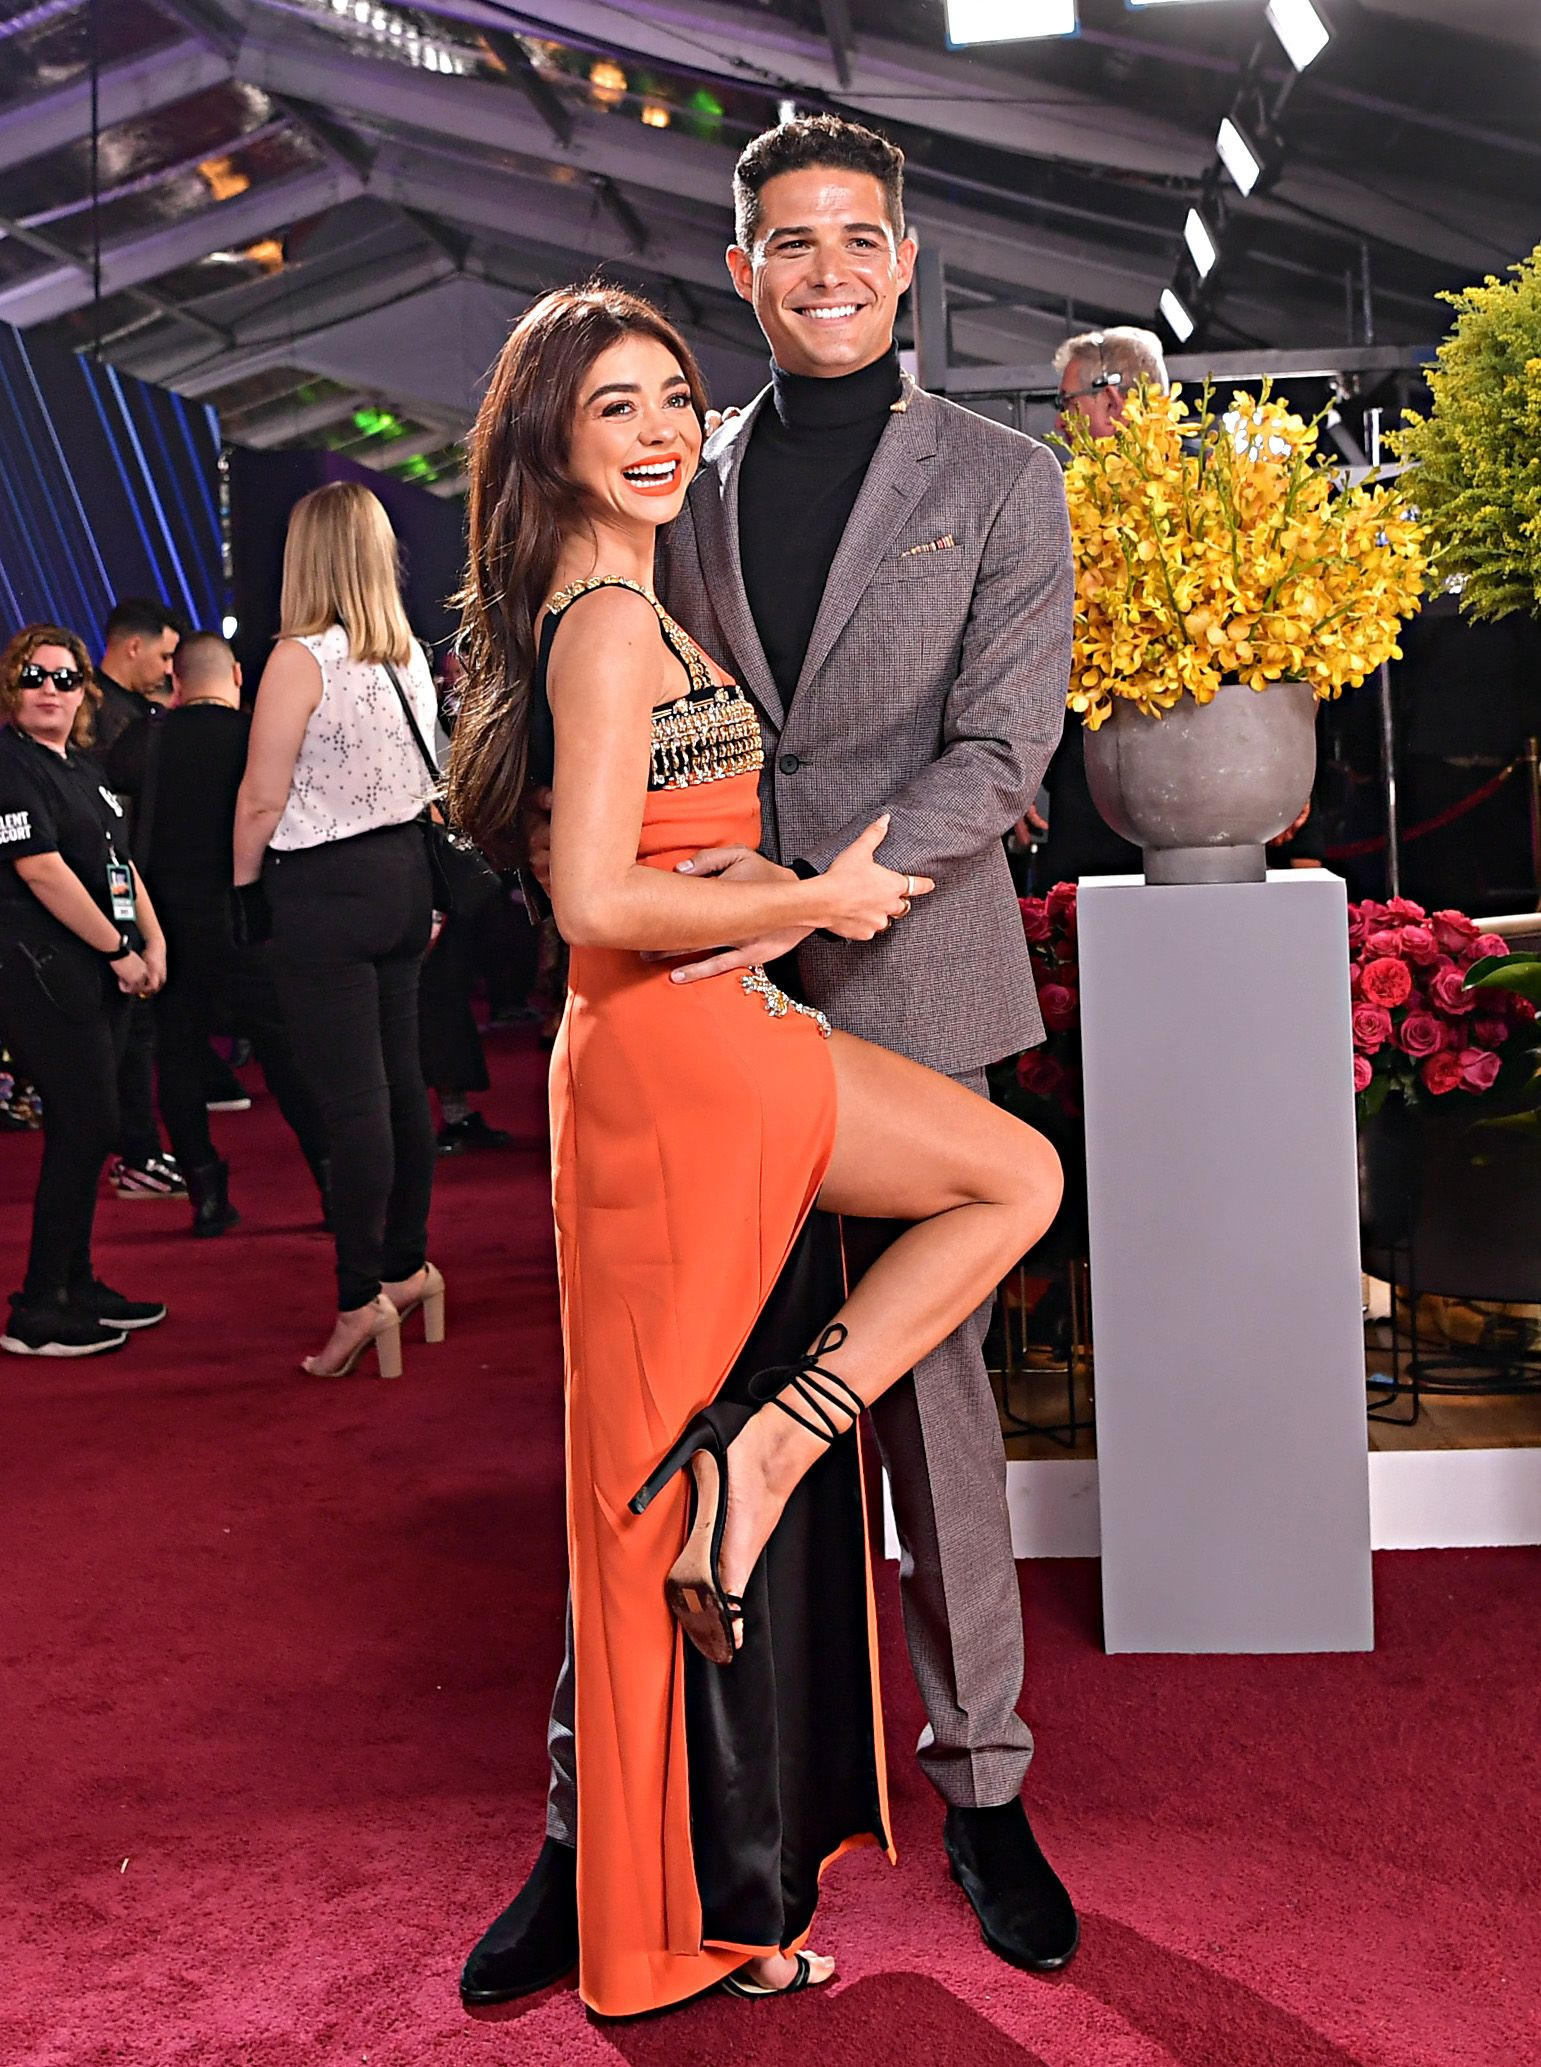 Sarah Hyland And Wells Adams Have The Most Adorable Relationship Timeline